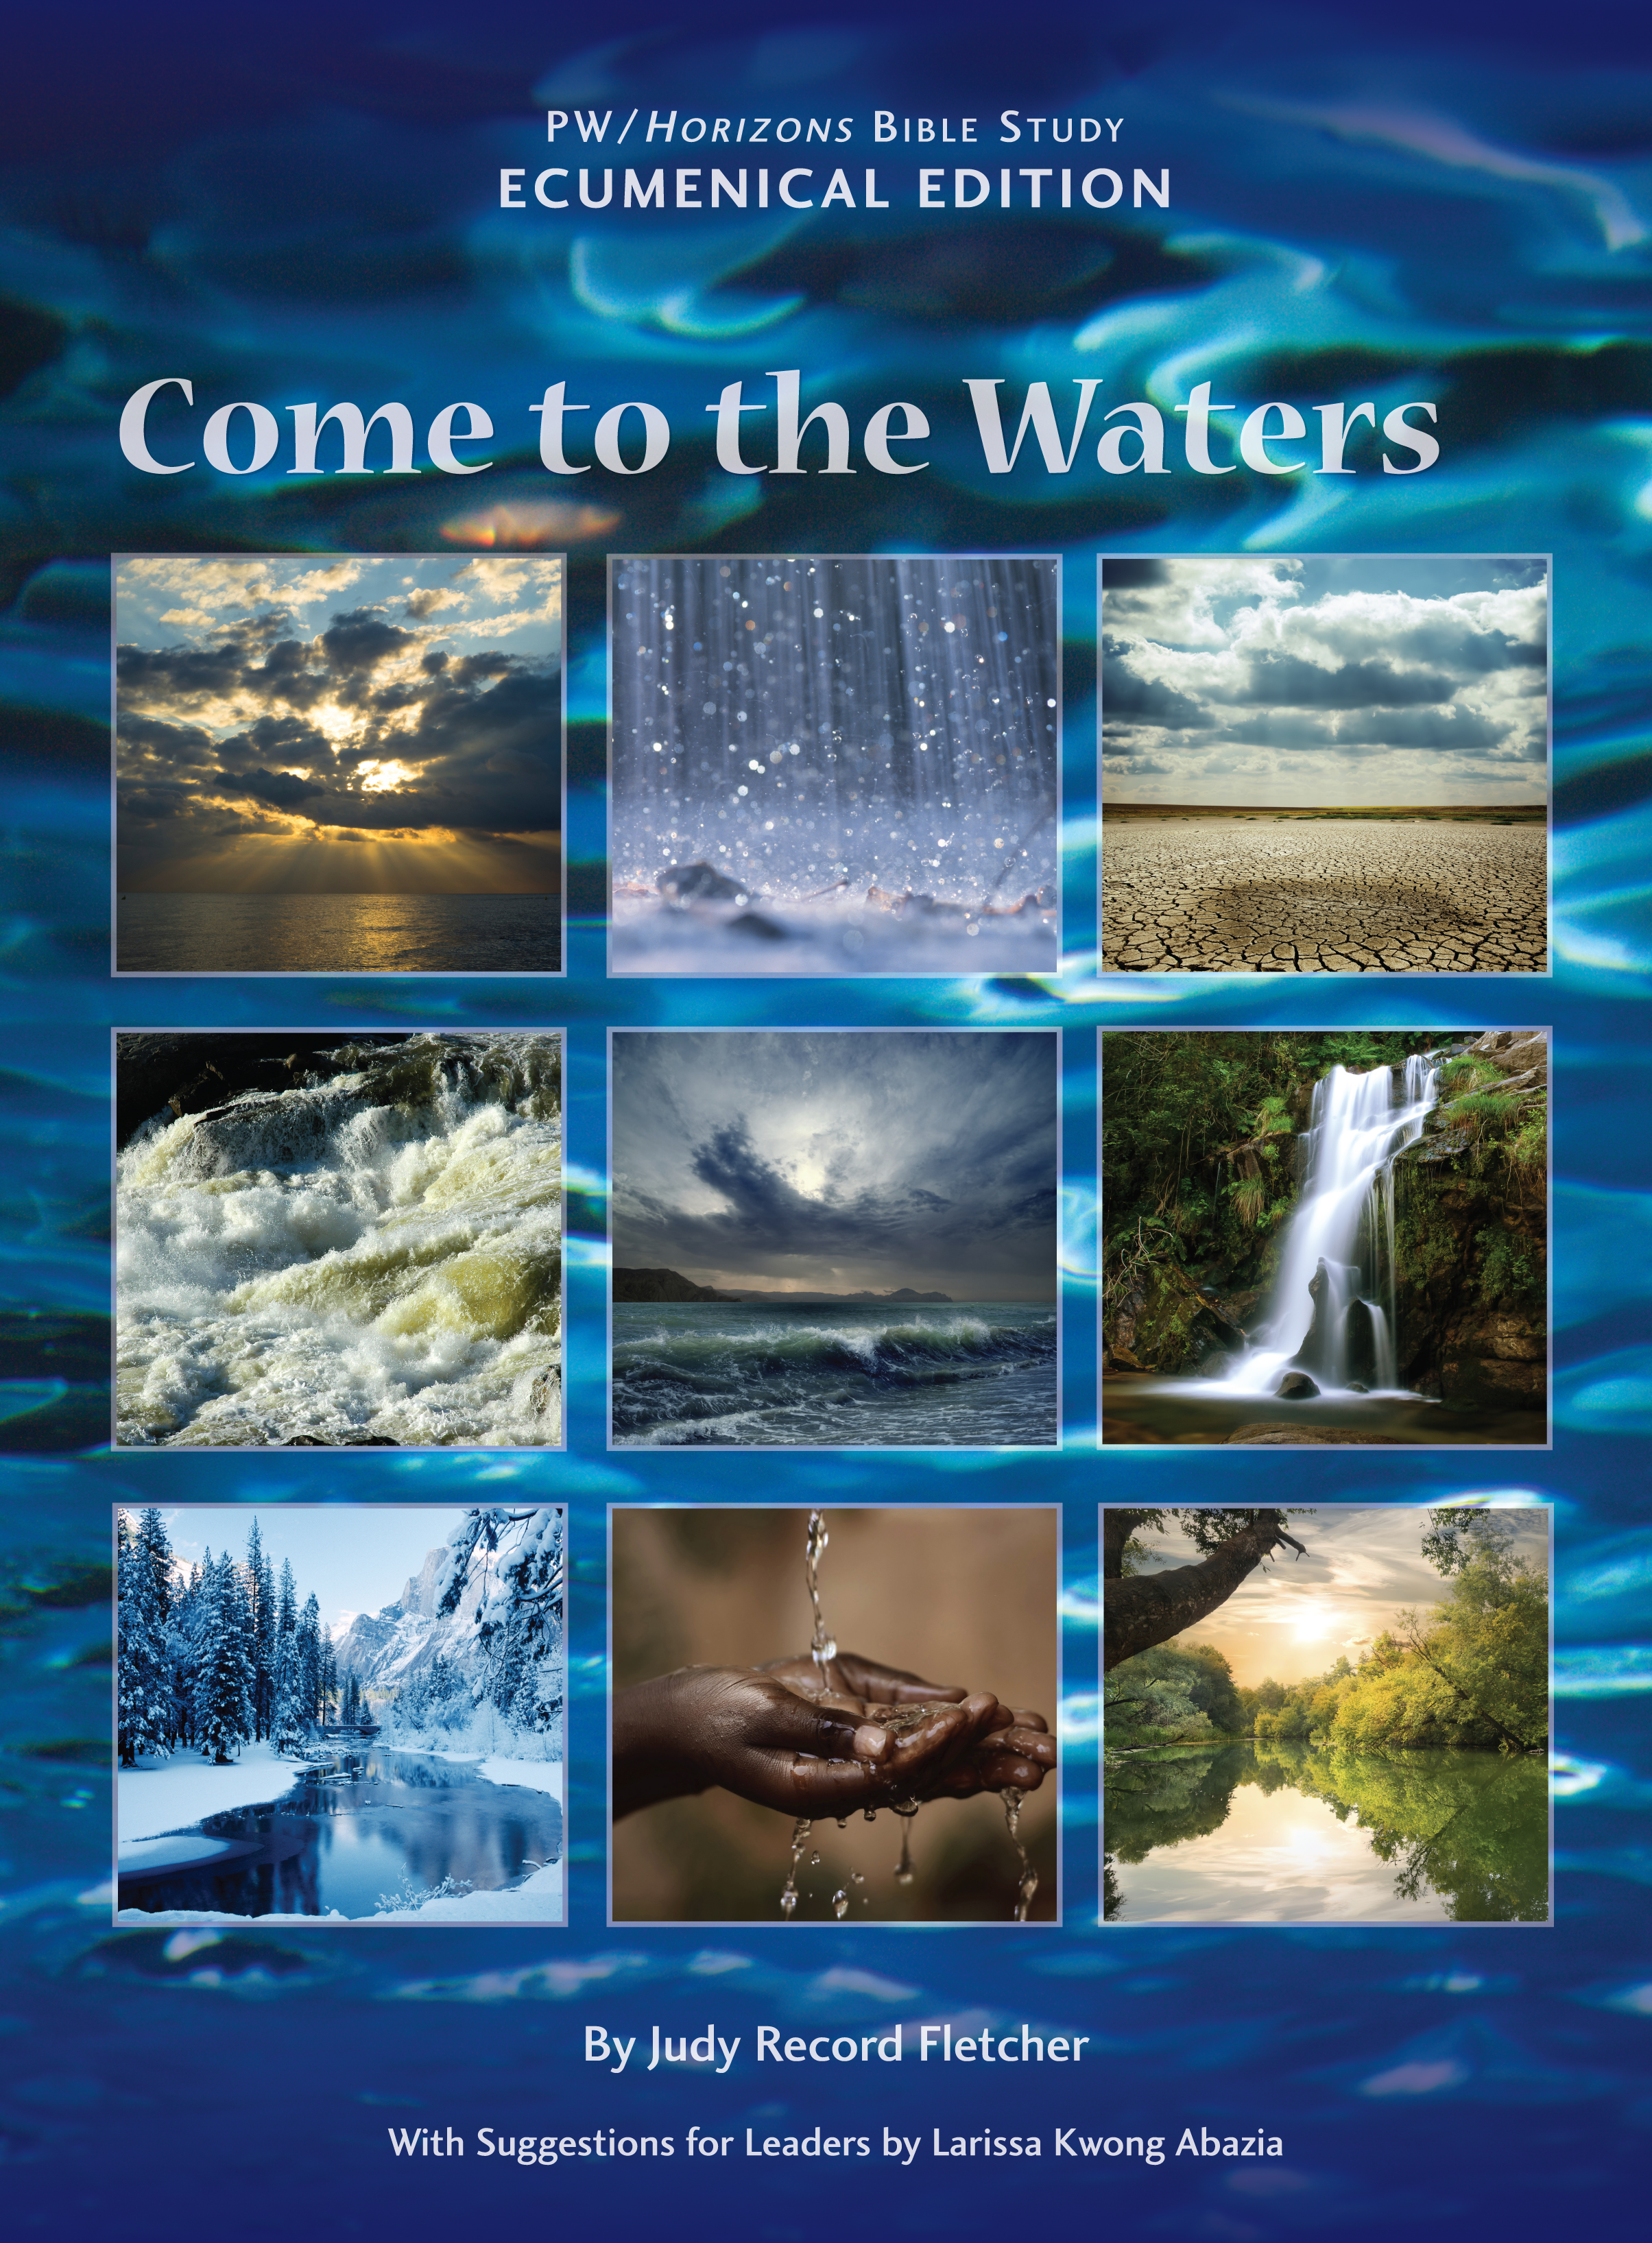 Come to the Waters Ecumenical Edition